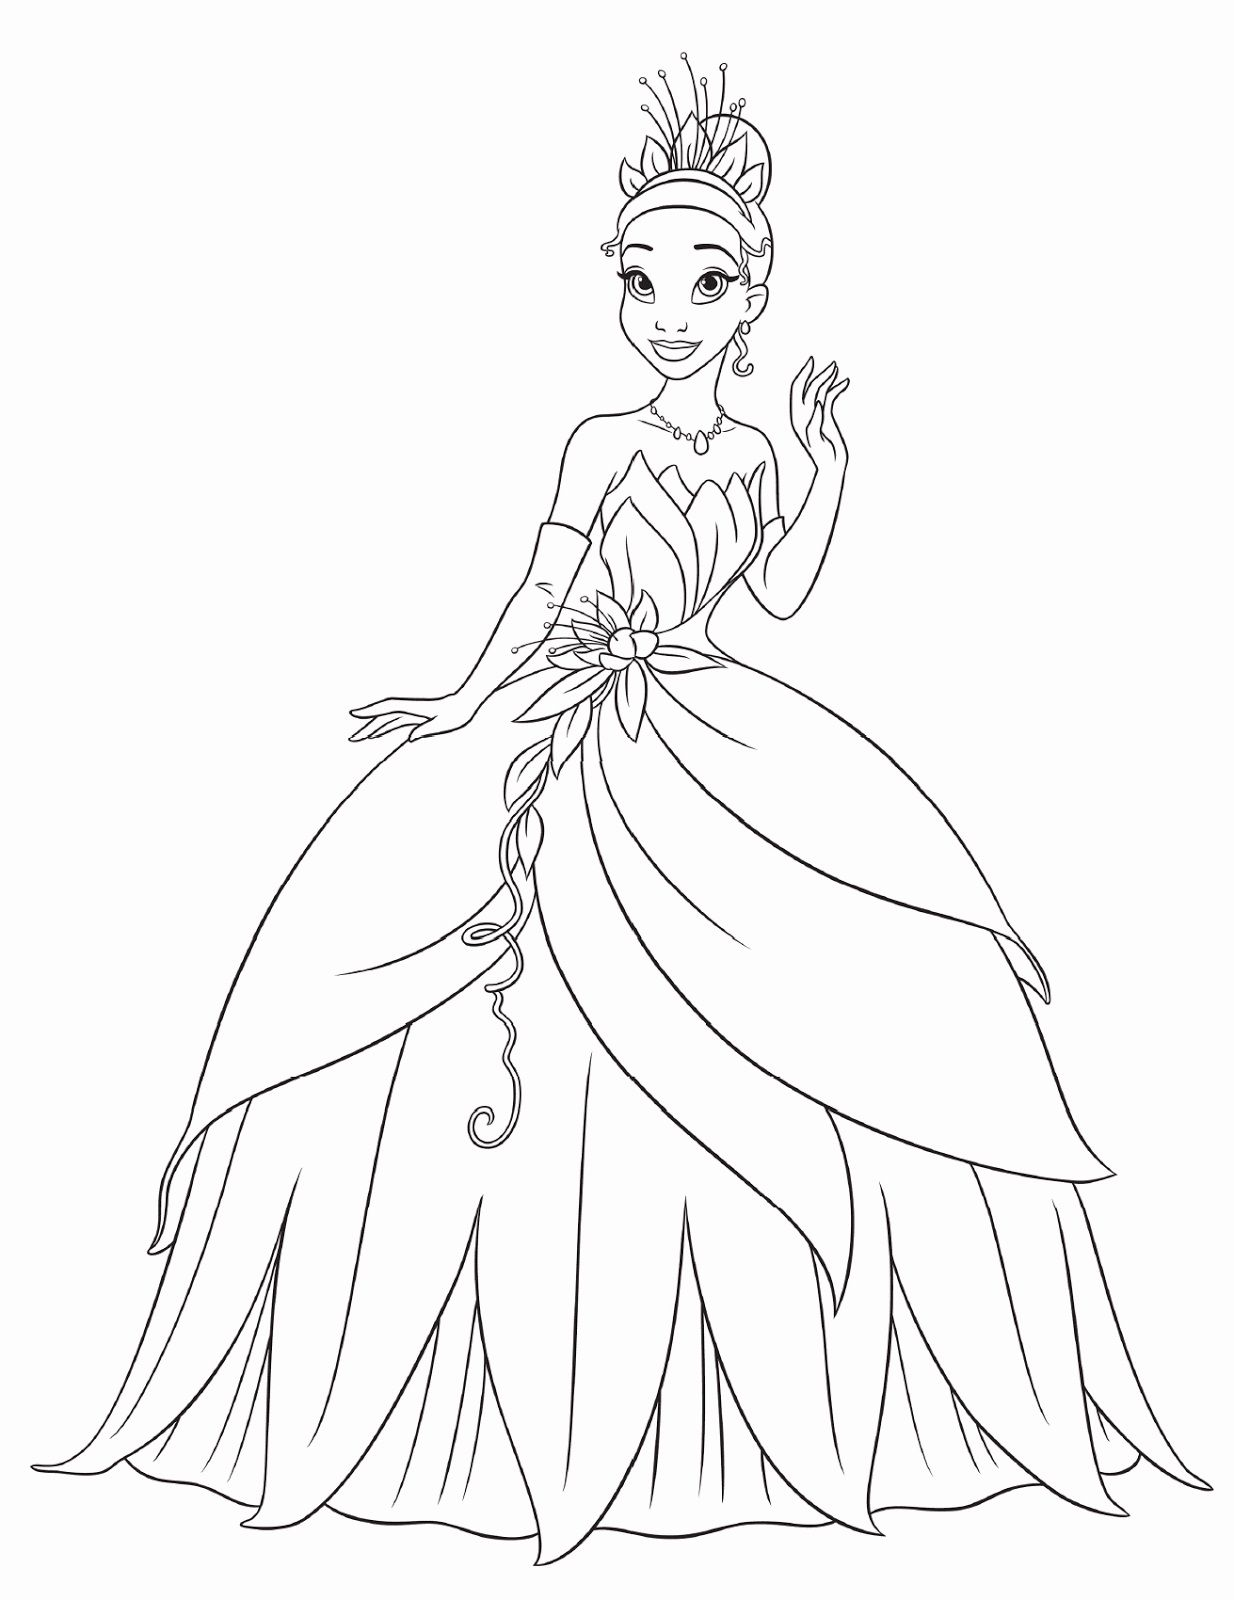 Free Printable Princess And The Frog Coloring Pages For Kids Color This Online Pictures Sheets A Book Of